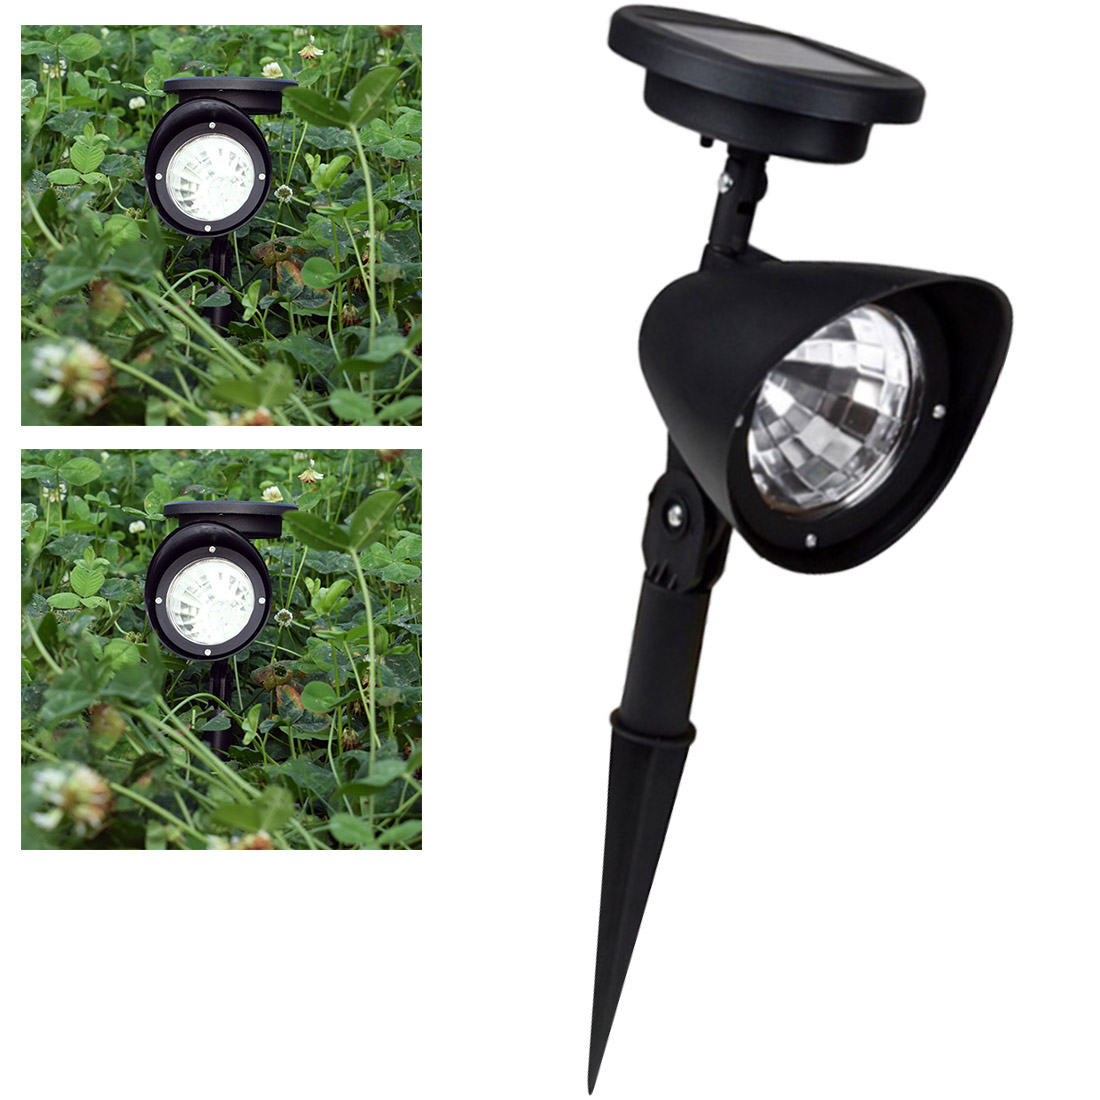 30cm Solar Energy Waterproof Lawn Lamp Outdoor LED Lights Lawn Garden Landscape Garden Yard Path Lawn Stake Lamp Home Decoration